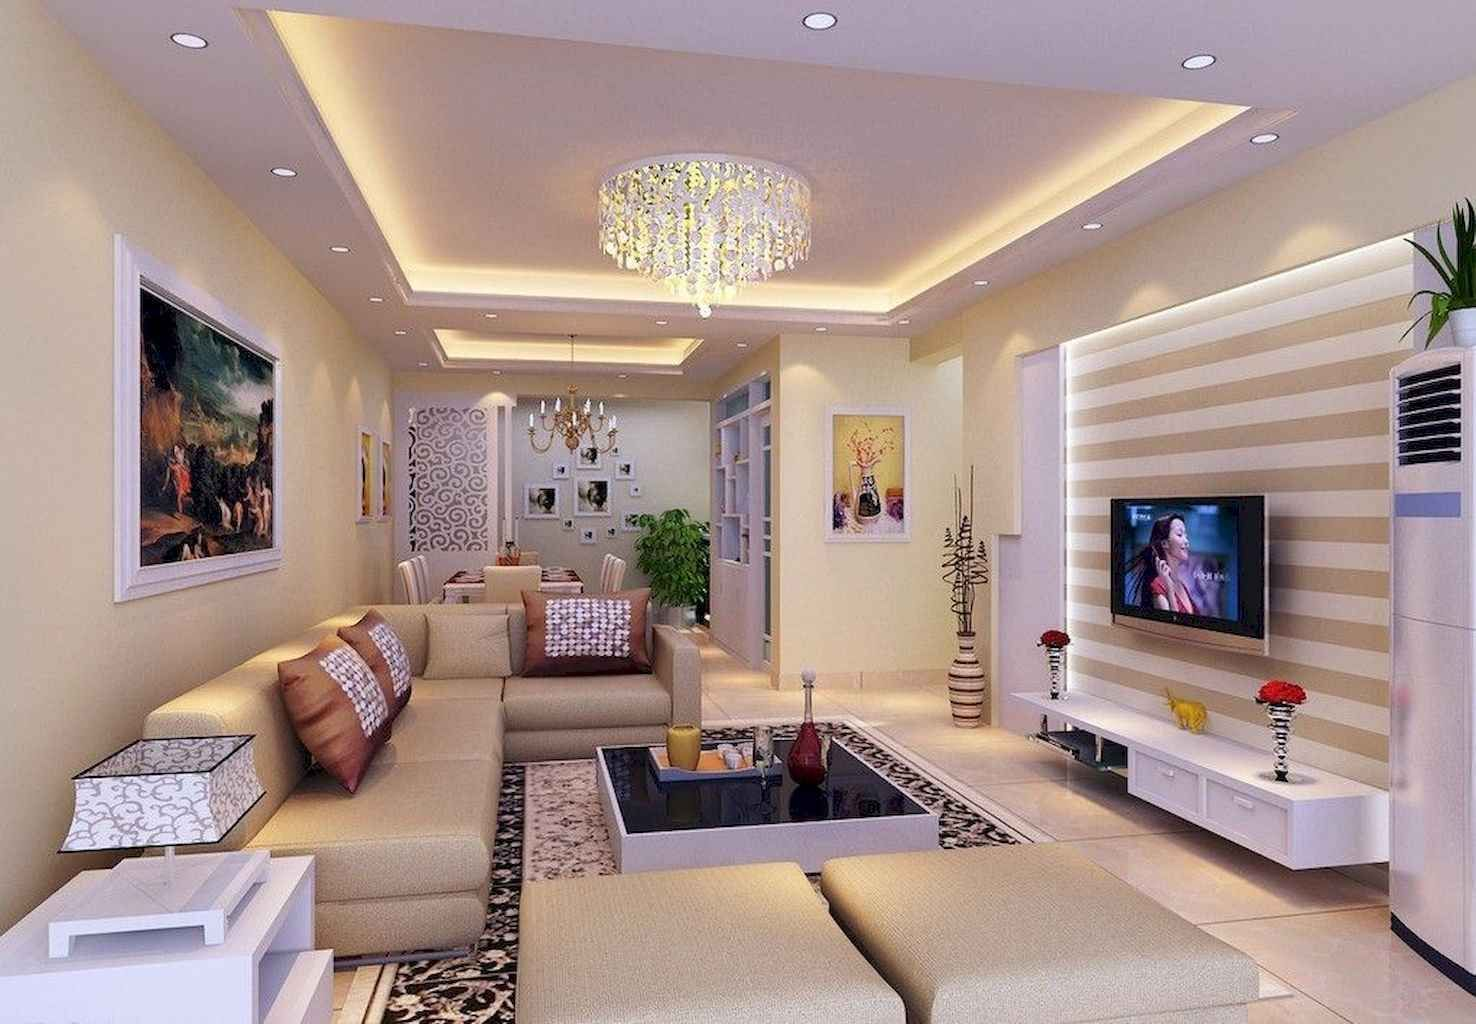 02 Cozy Small Living Room Decor Ideas On A Budget In 2020 Ceiling Design Living Room Simple Ceiling Design Living Room Ceiling